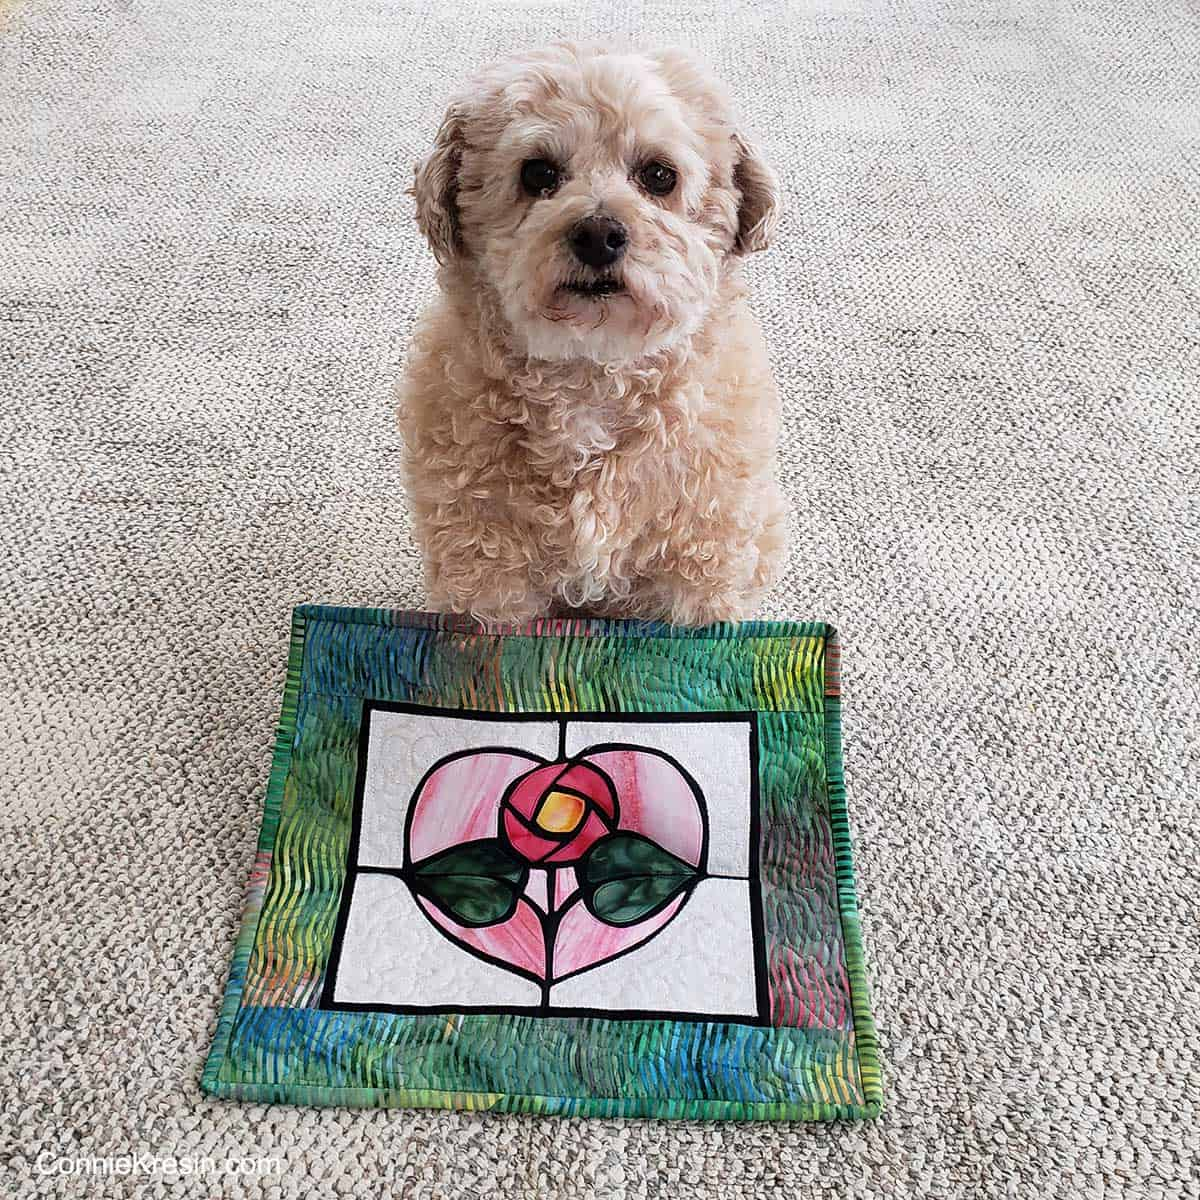 Mr. Mickey the dog and stained glass quilt